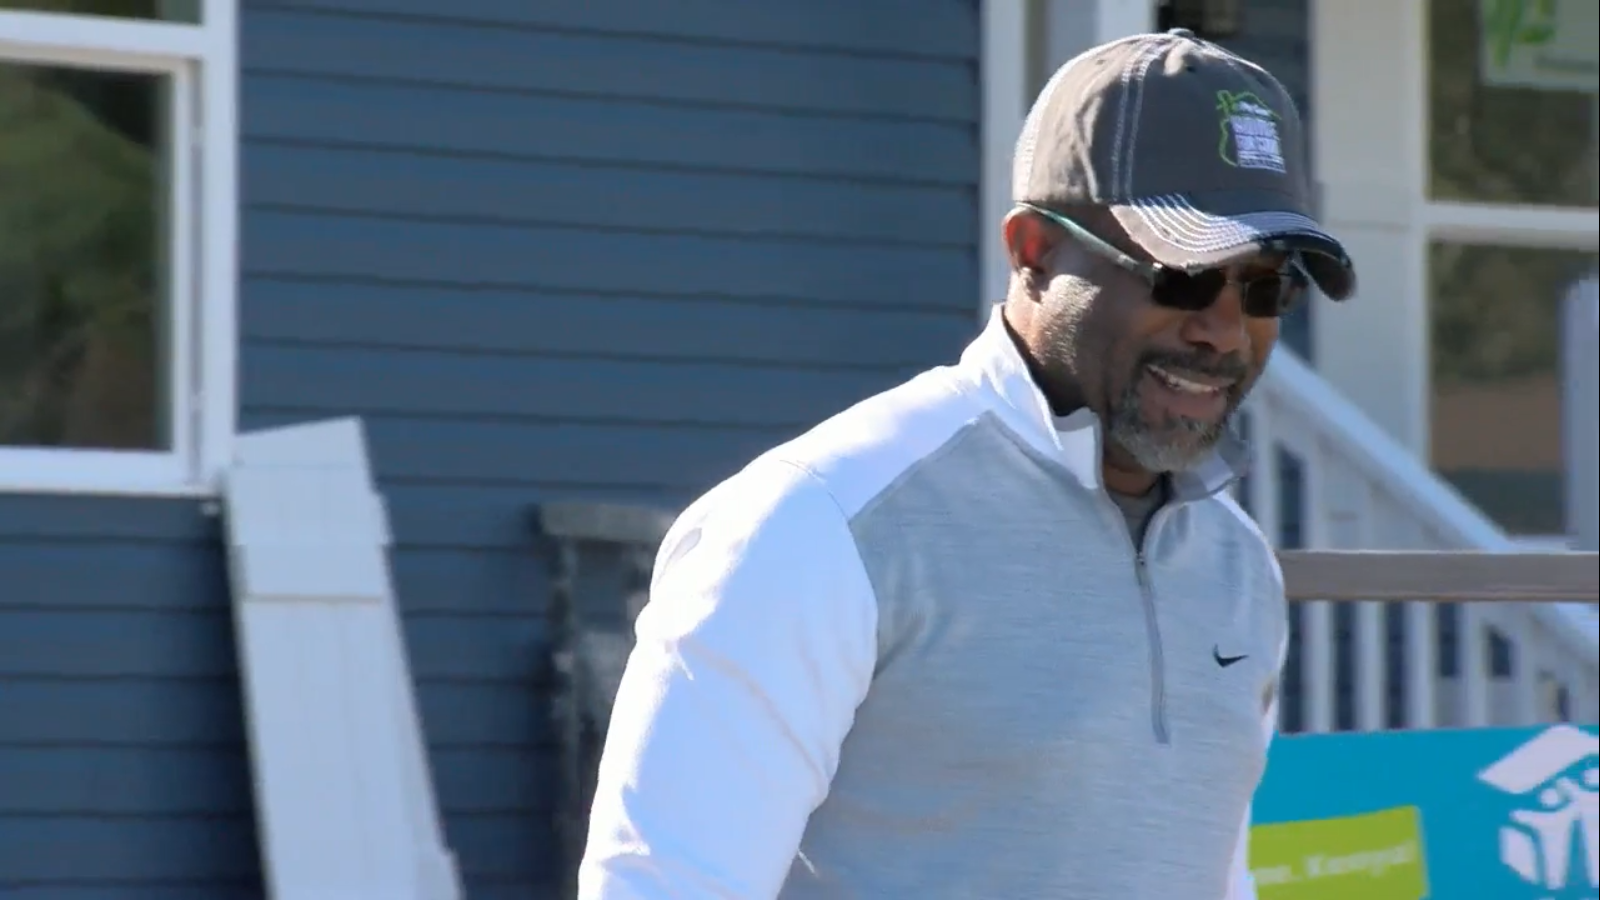 Darius Rucker surprises woman with new home (WCIV)<p></p>